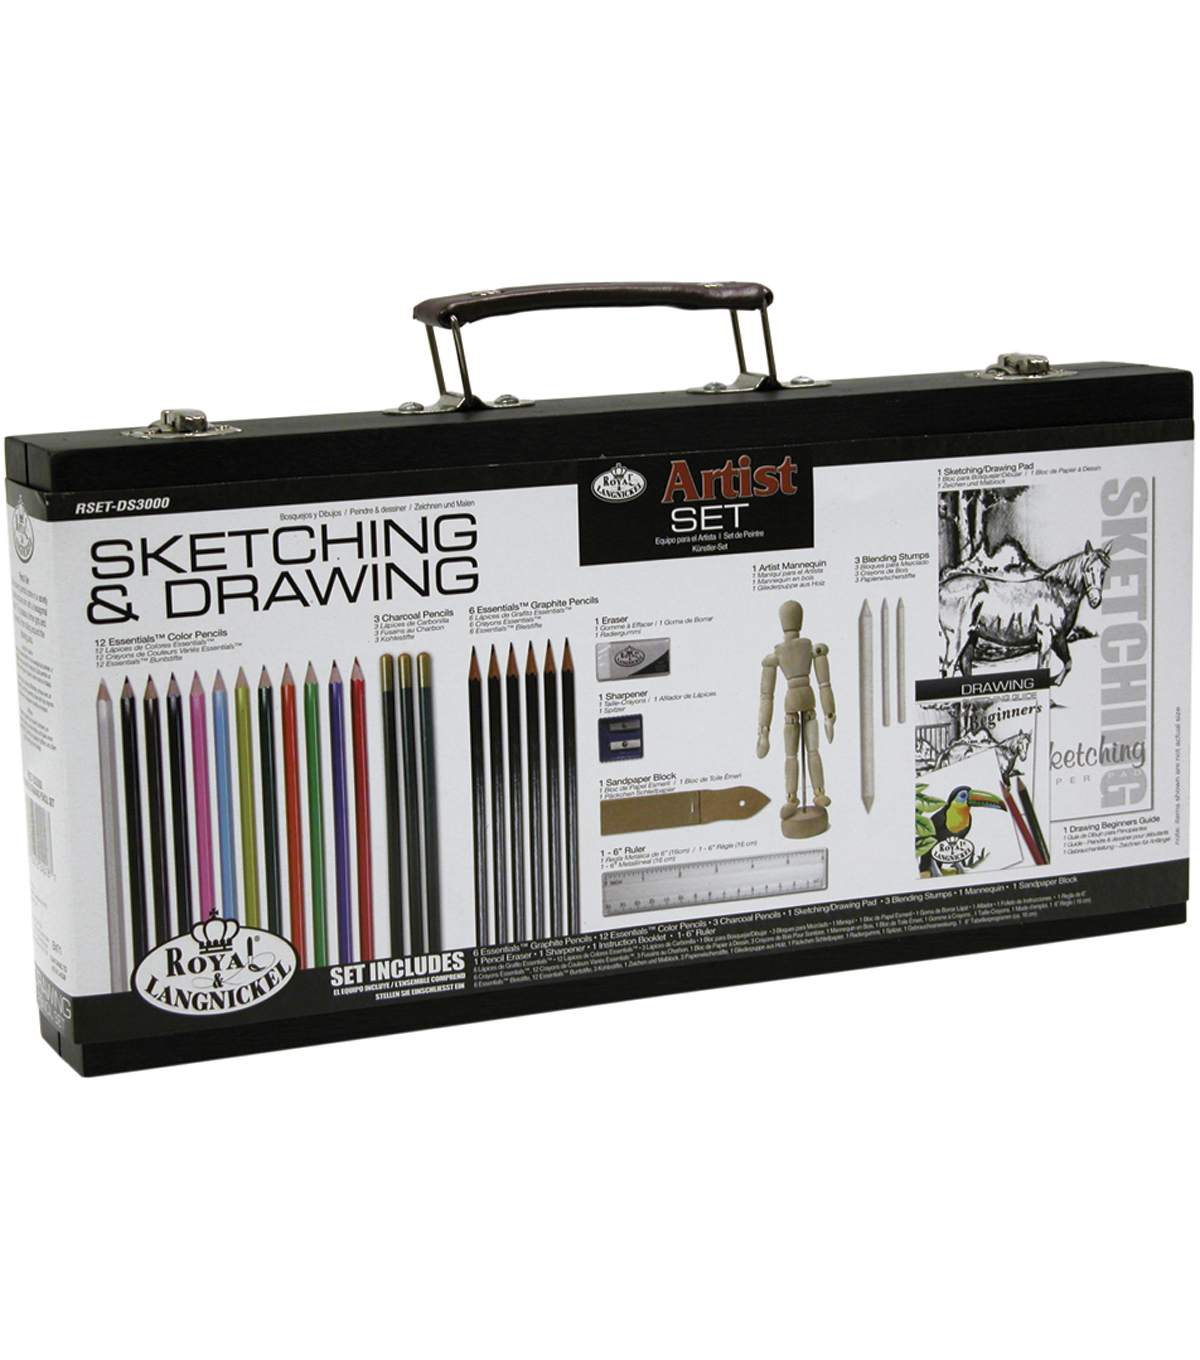 Royal Brush Beginner Drawing Wood Box Set